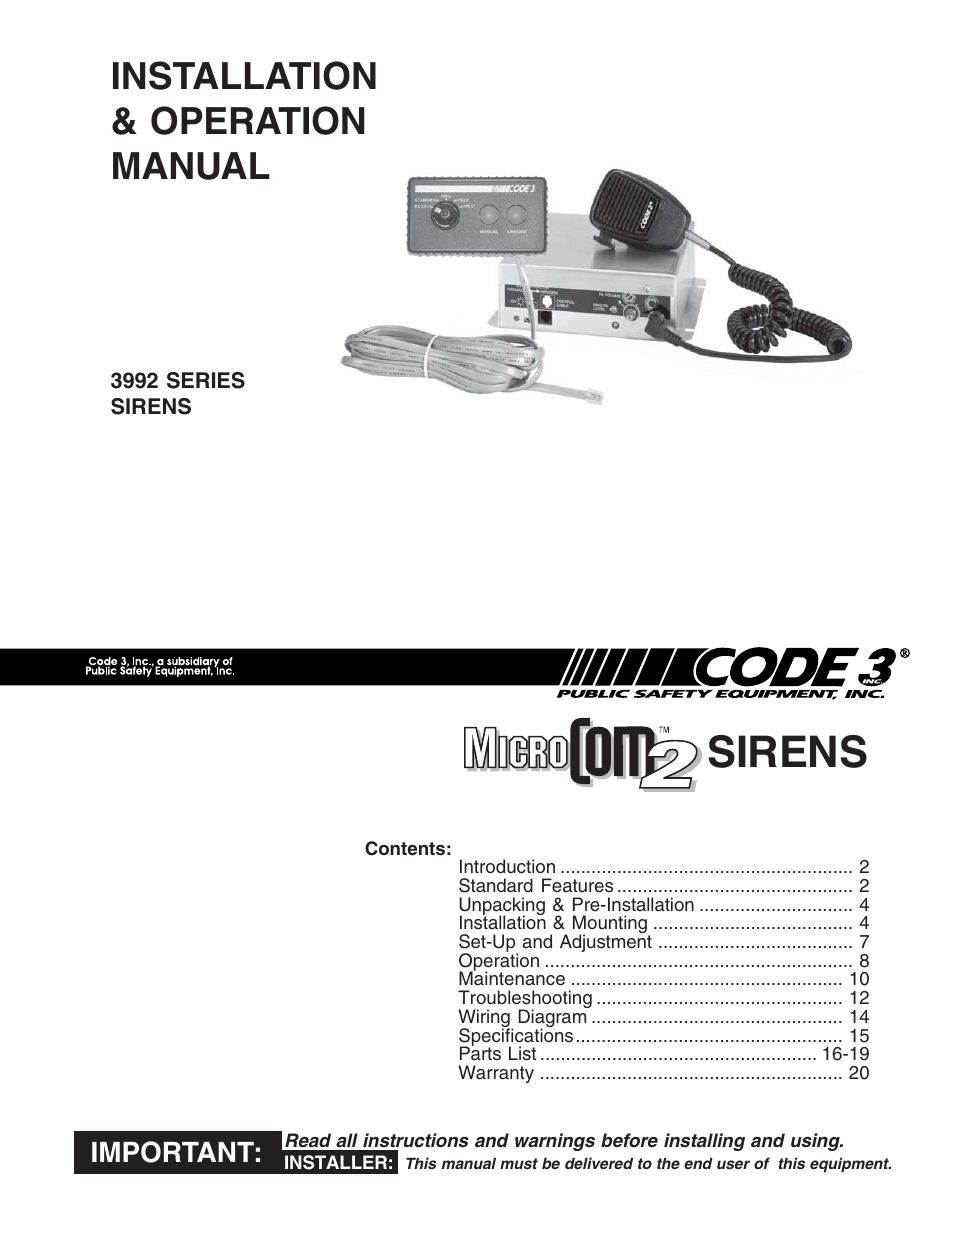 Code 3 Microcom 2 Siren User Manual 20 Pages Wiring Diagram